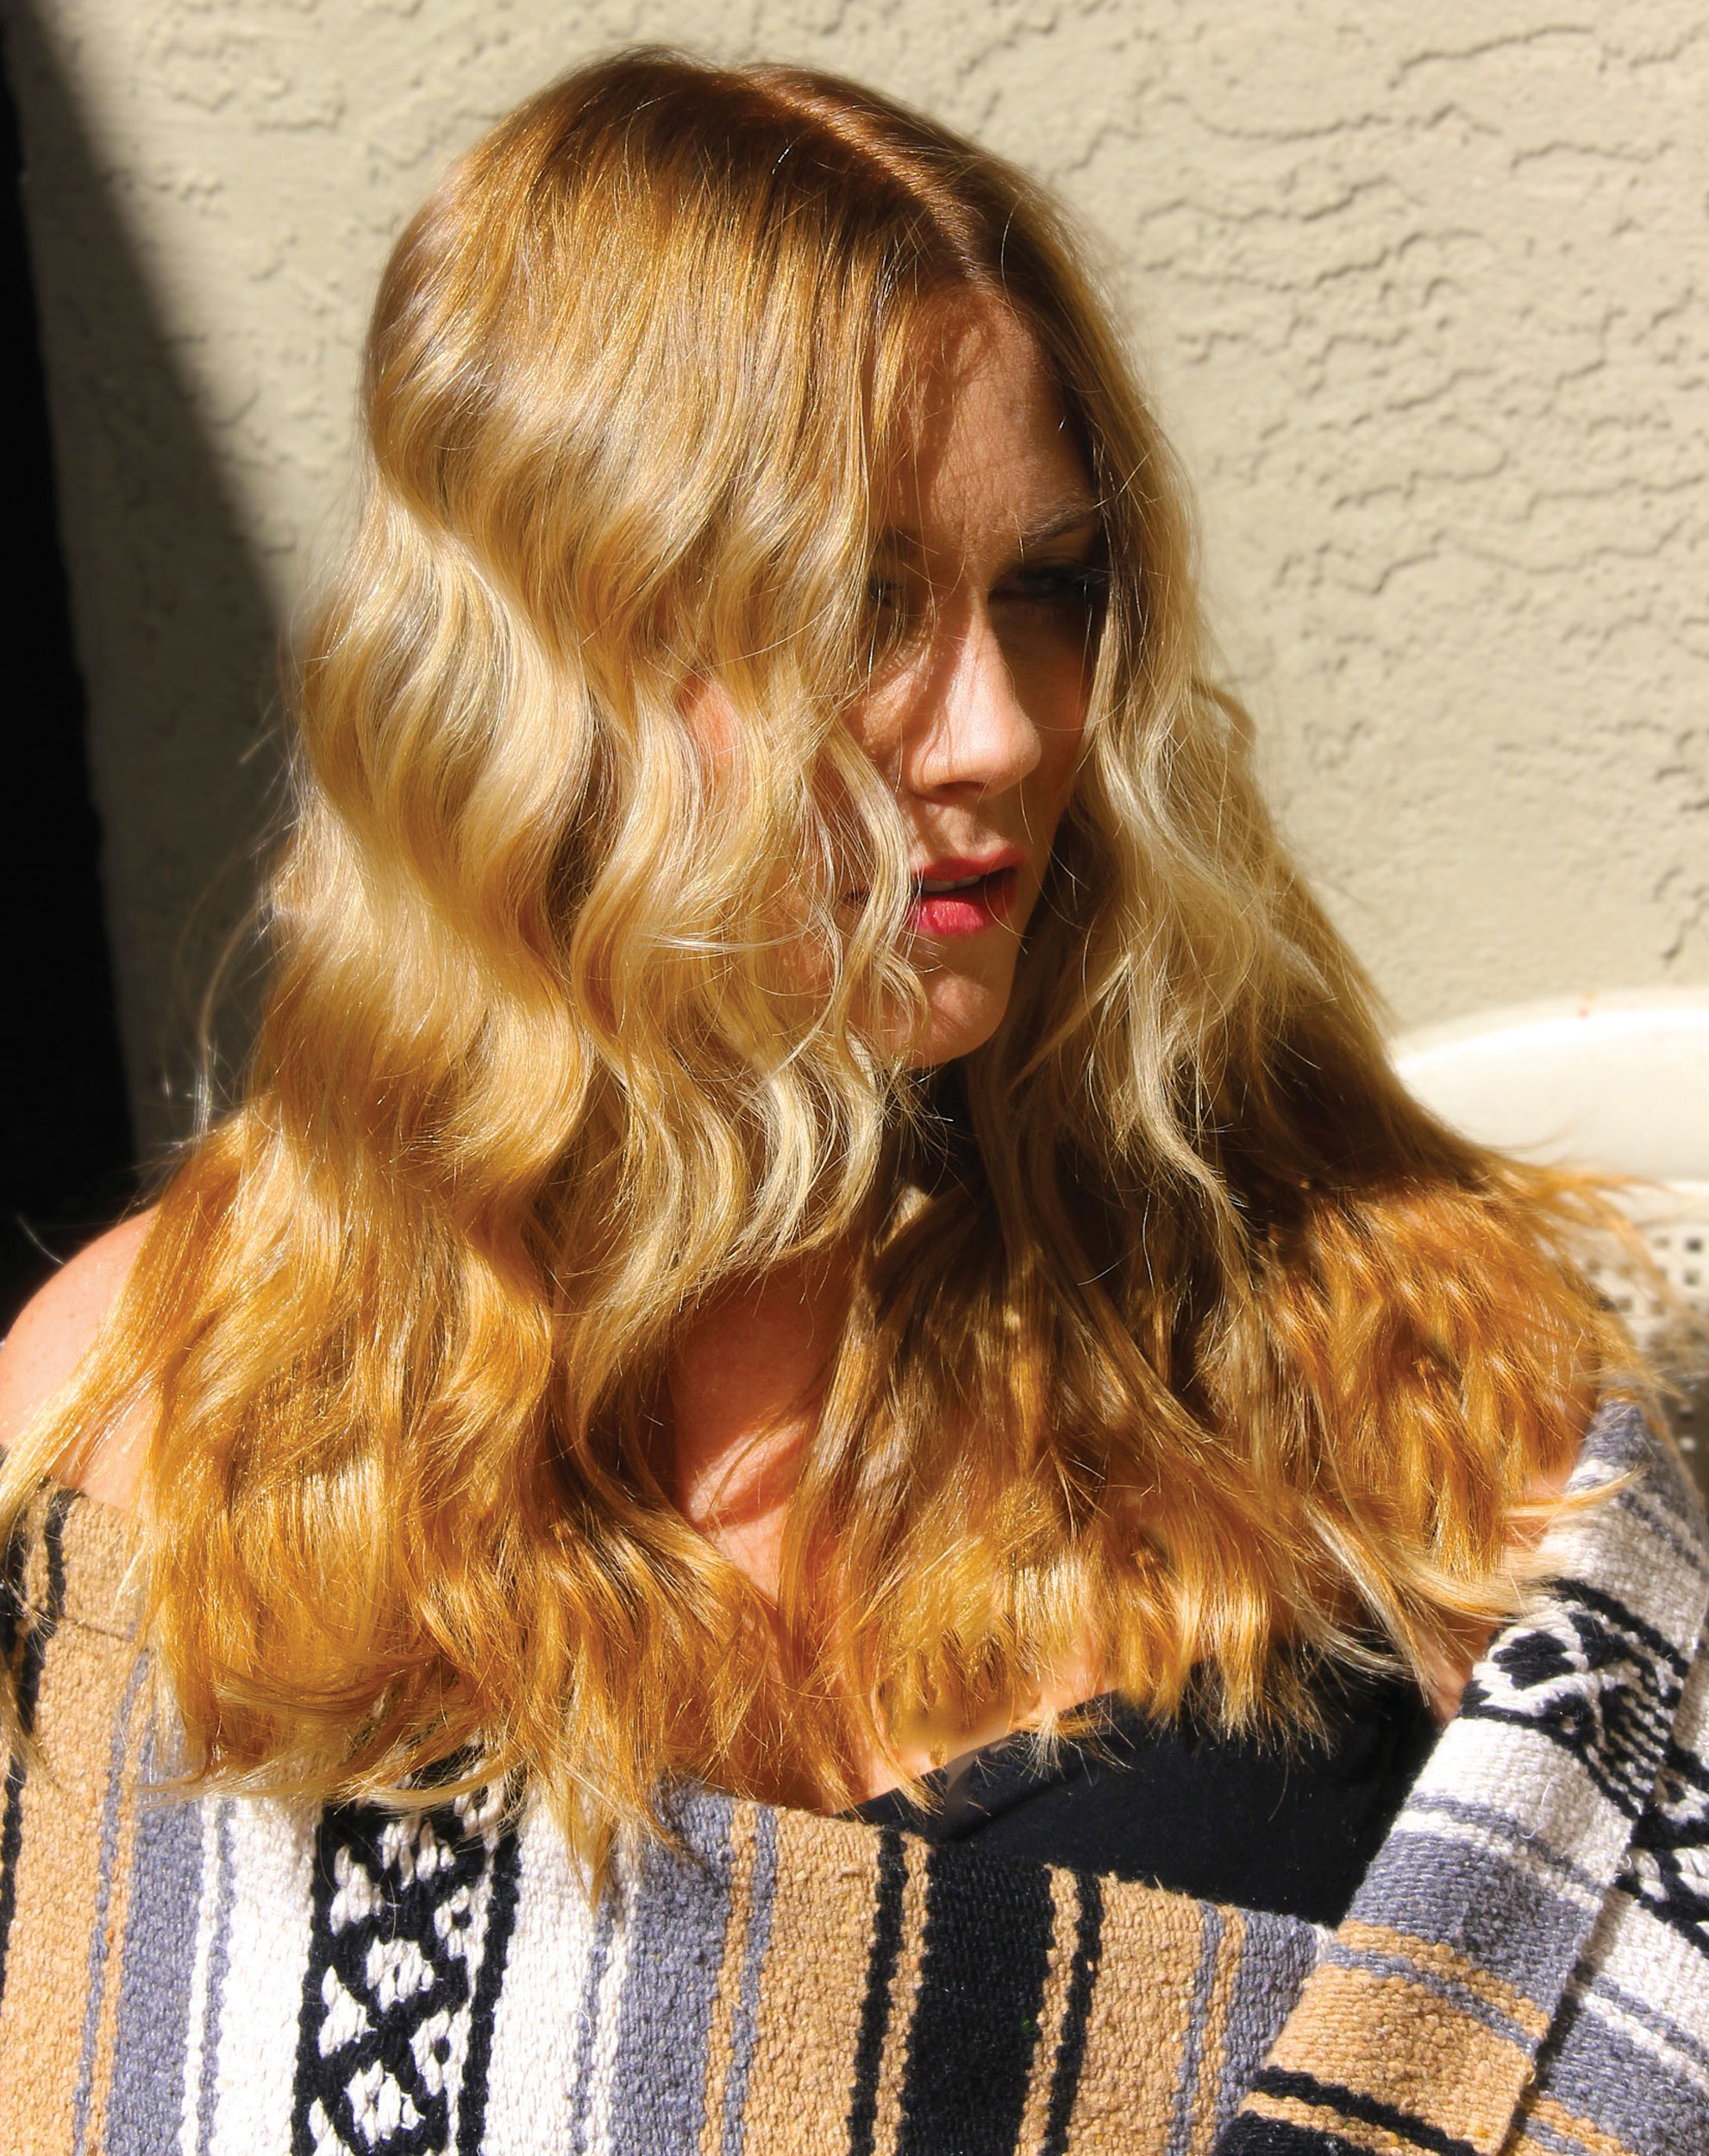 Amber-Wheat Blonde Lakme Color How-To